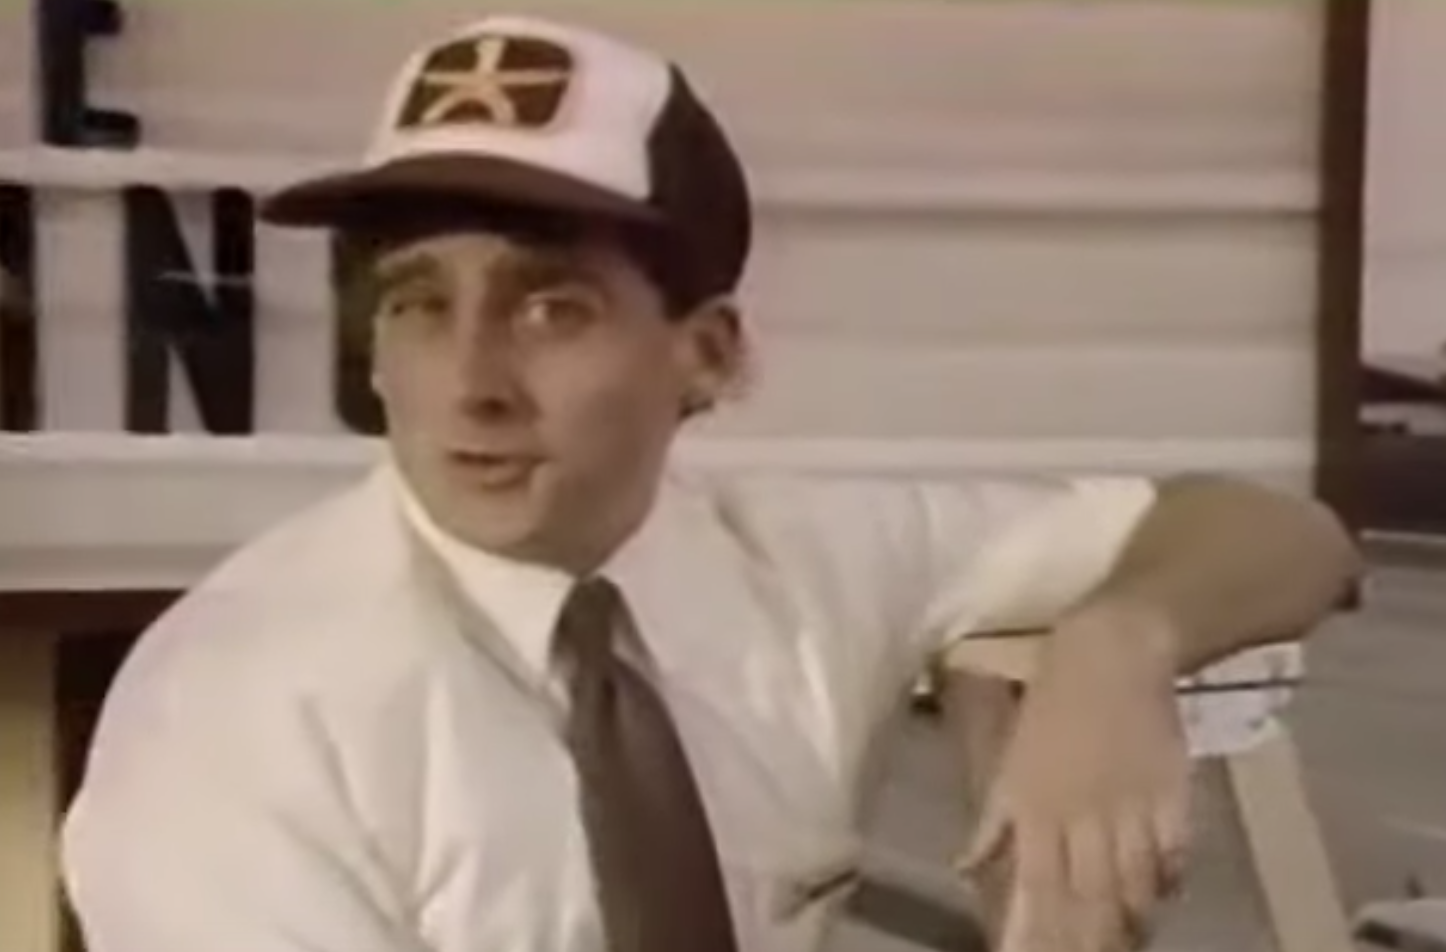 Watch Steve Carrell Sell Chicken In This Oddball 1980s Commercial